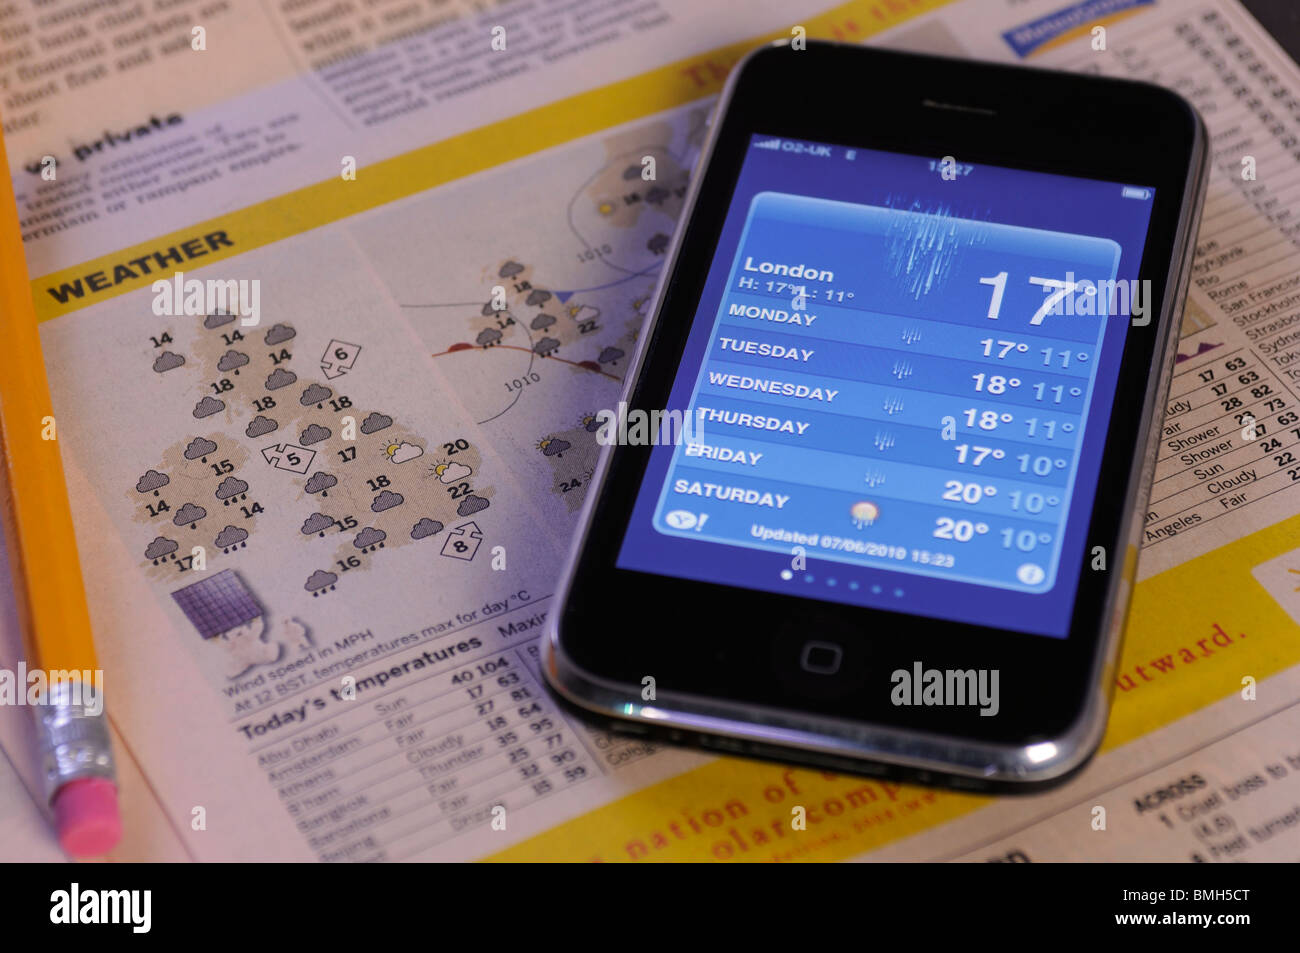 an iphone with a weather forcast on the screen - Stock Image